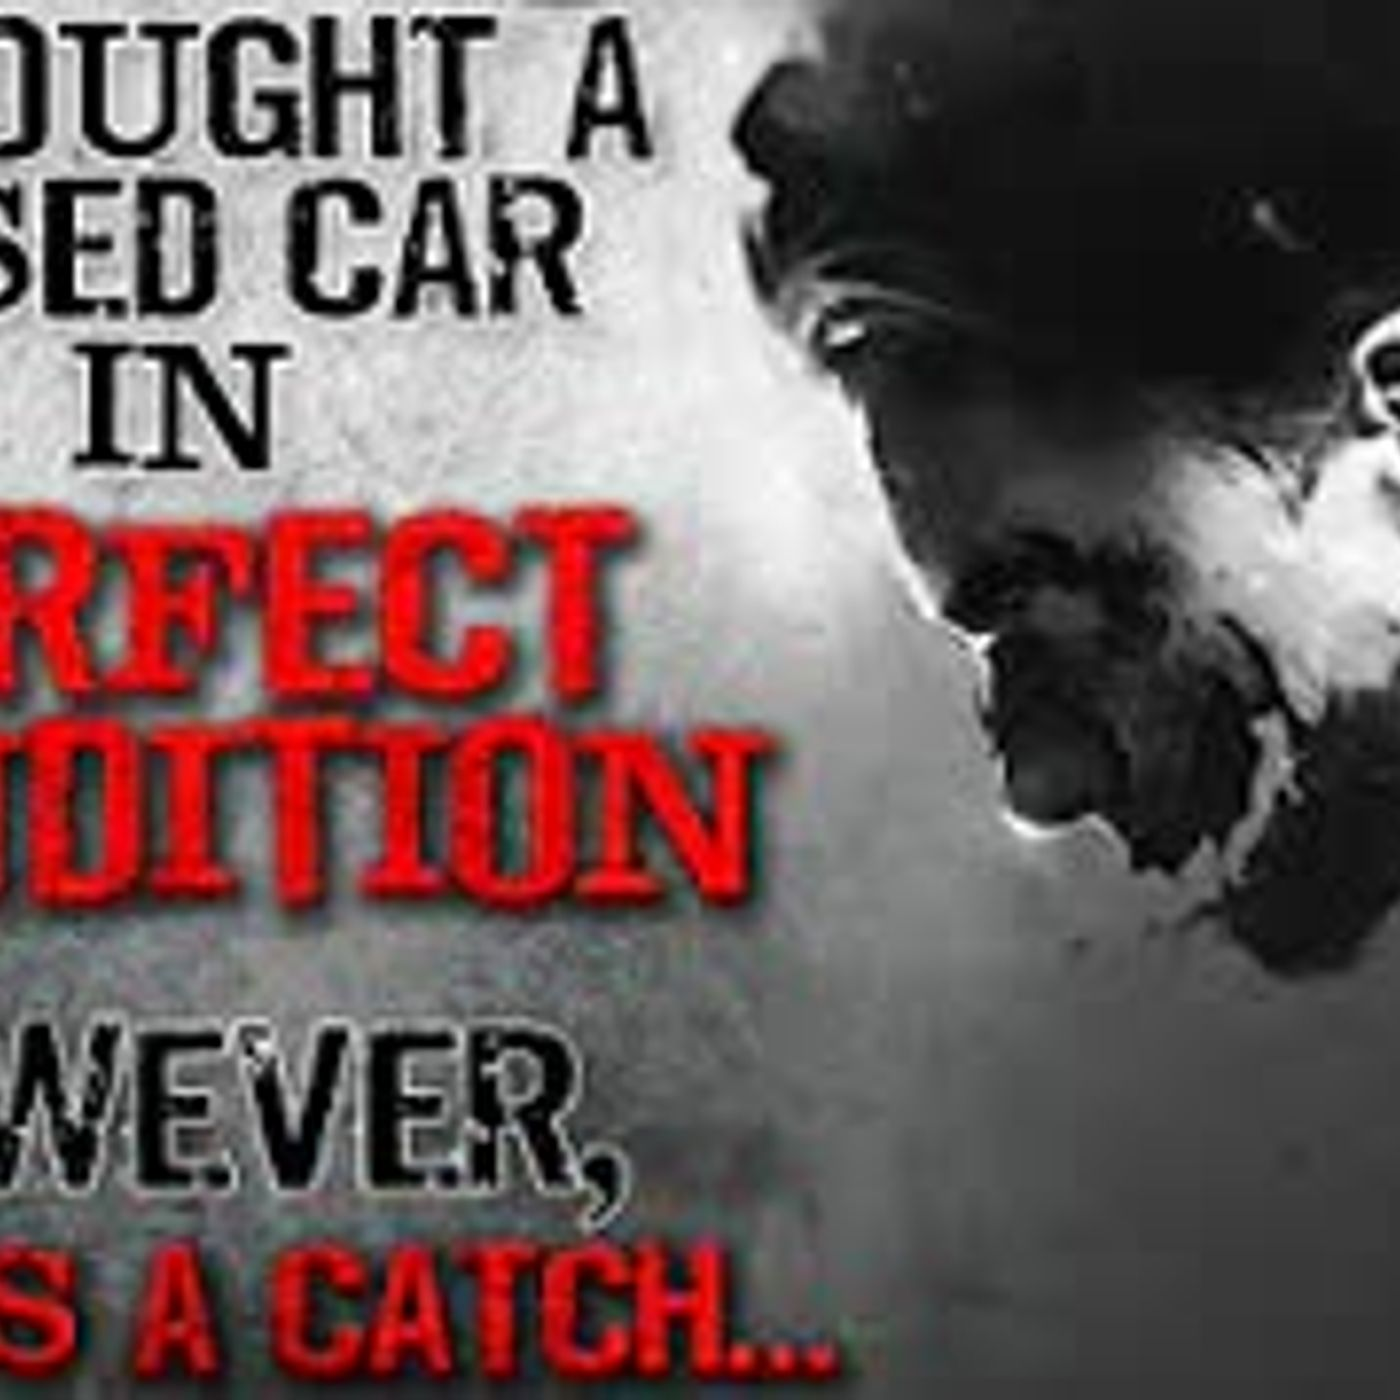 """I bought a used car in perfect condition. However, there's a catch"" Creepypasta"